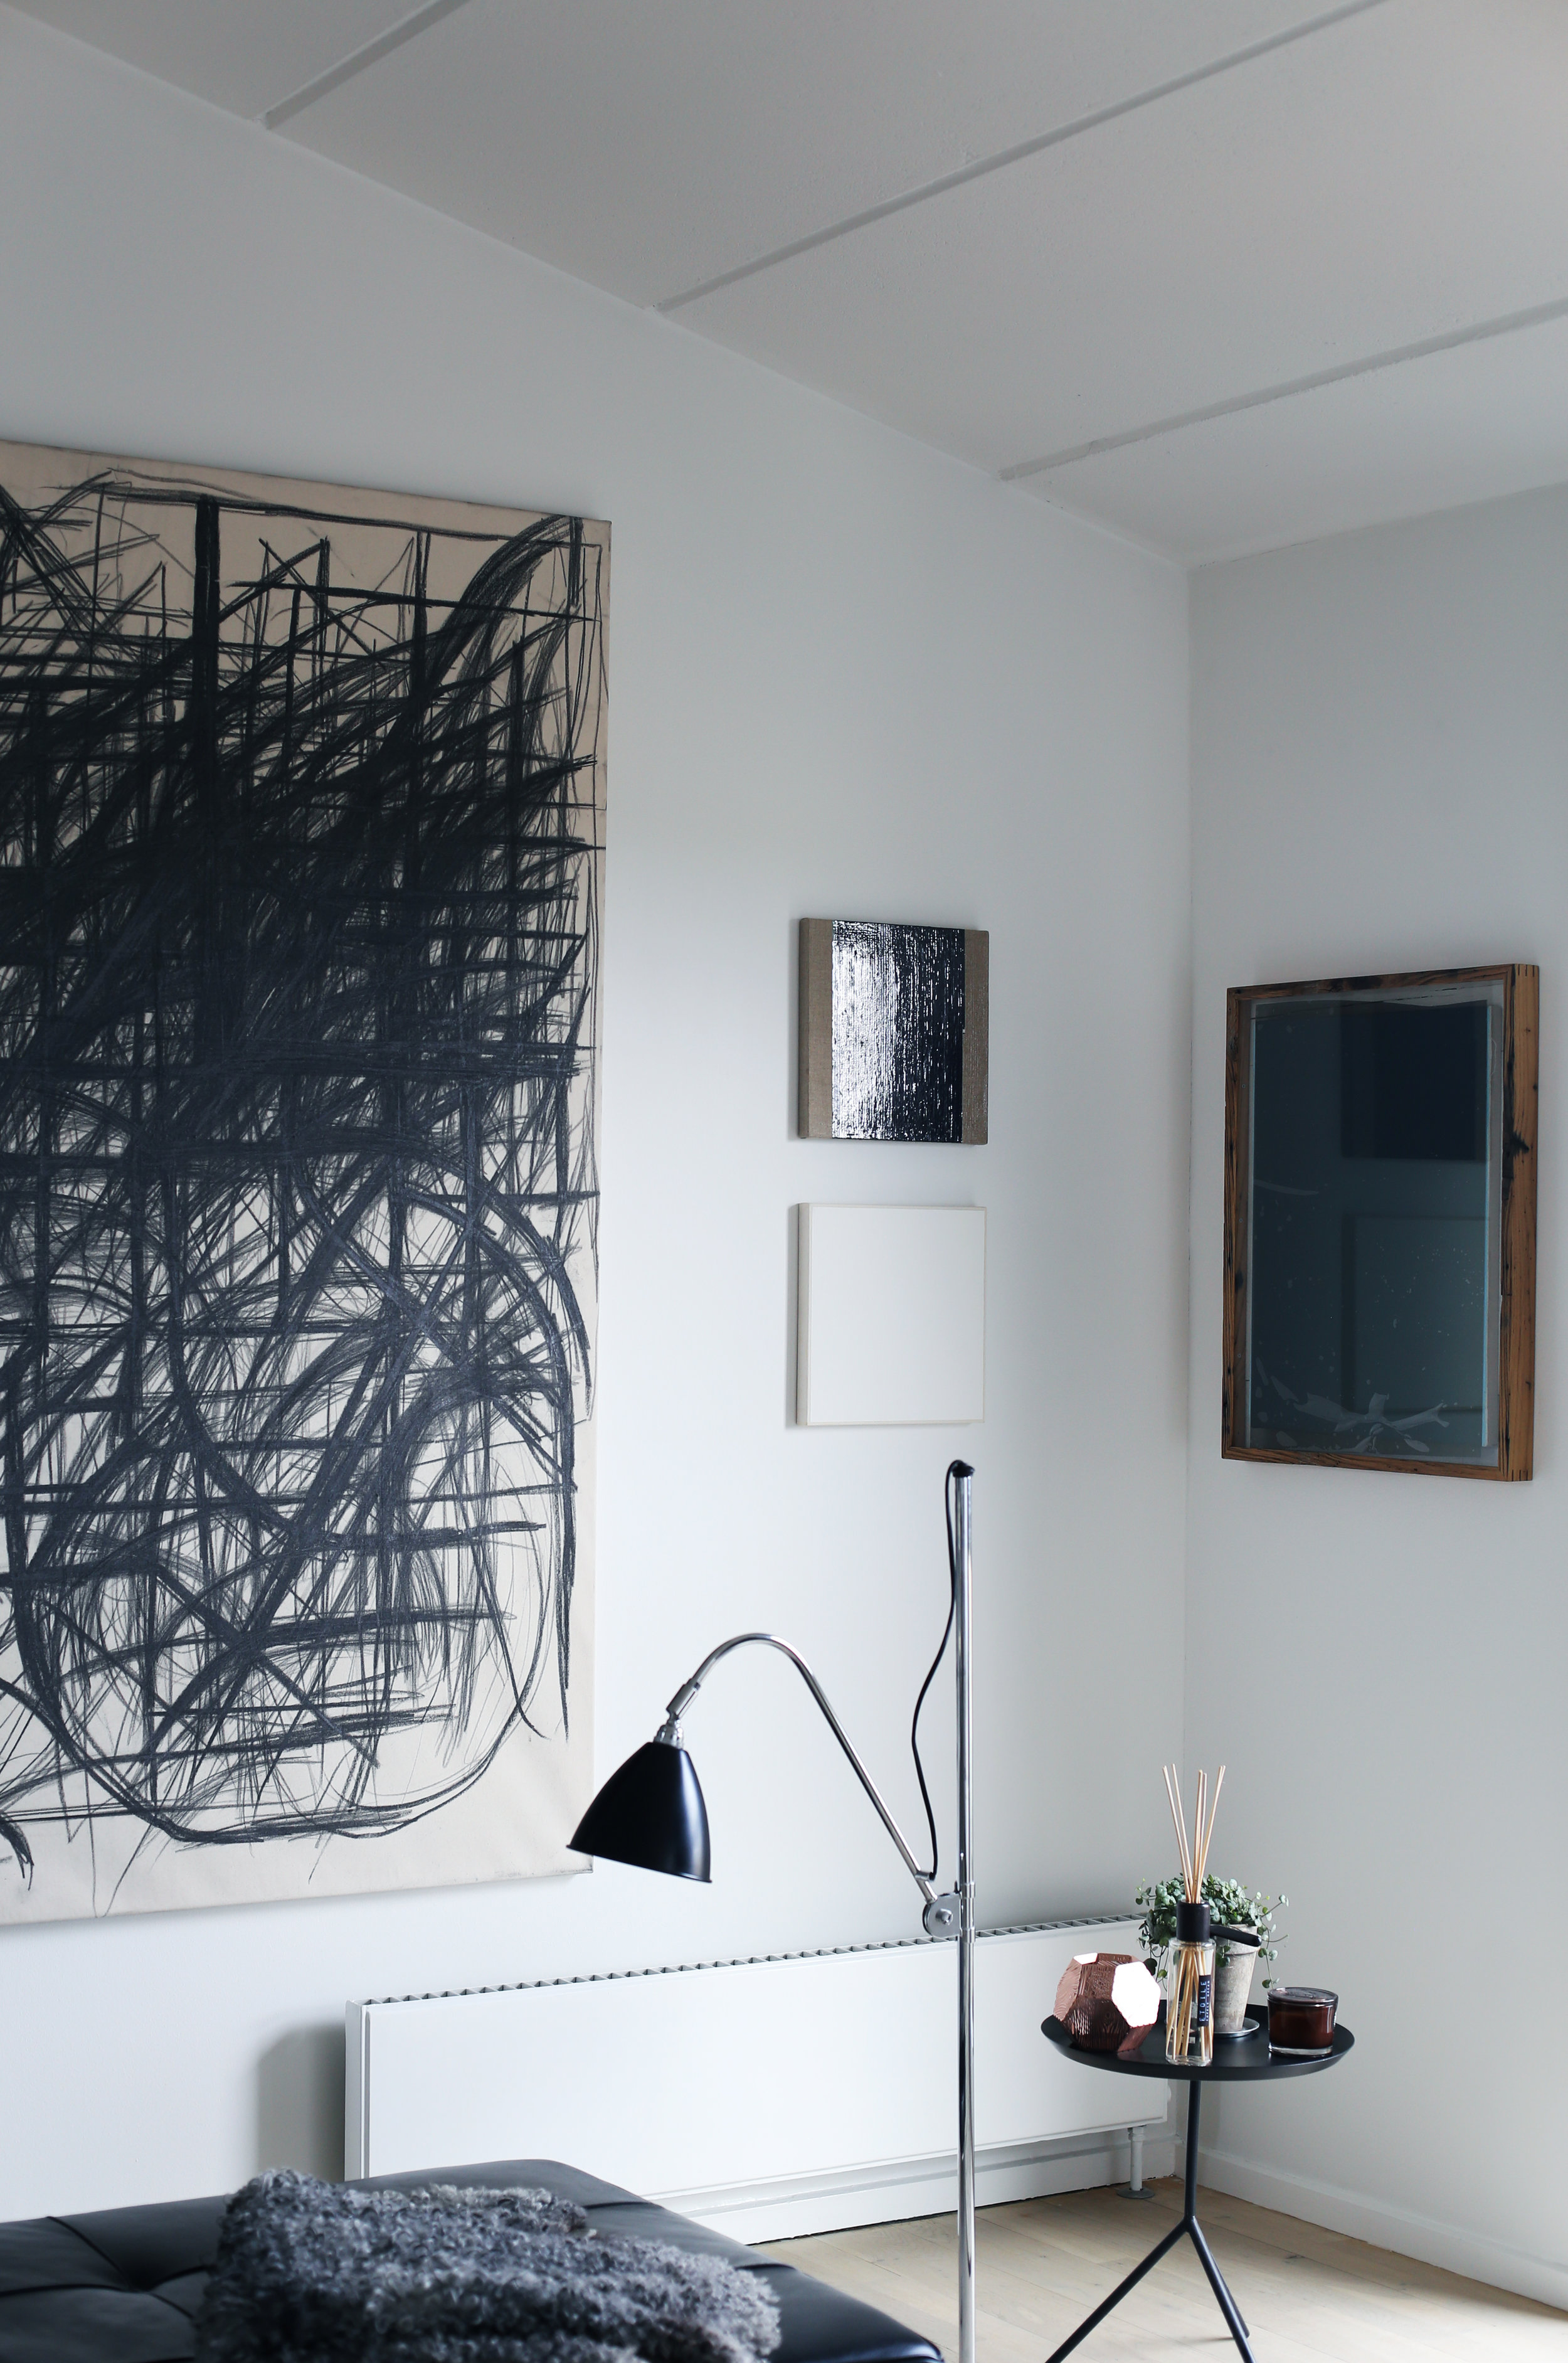 Works by Peppi Bottrop and Graham Collins - Photo: Nana Hagel